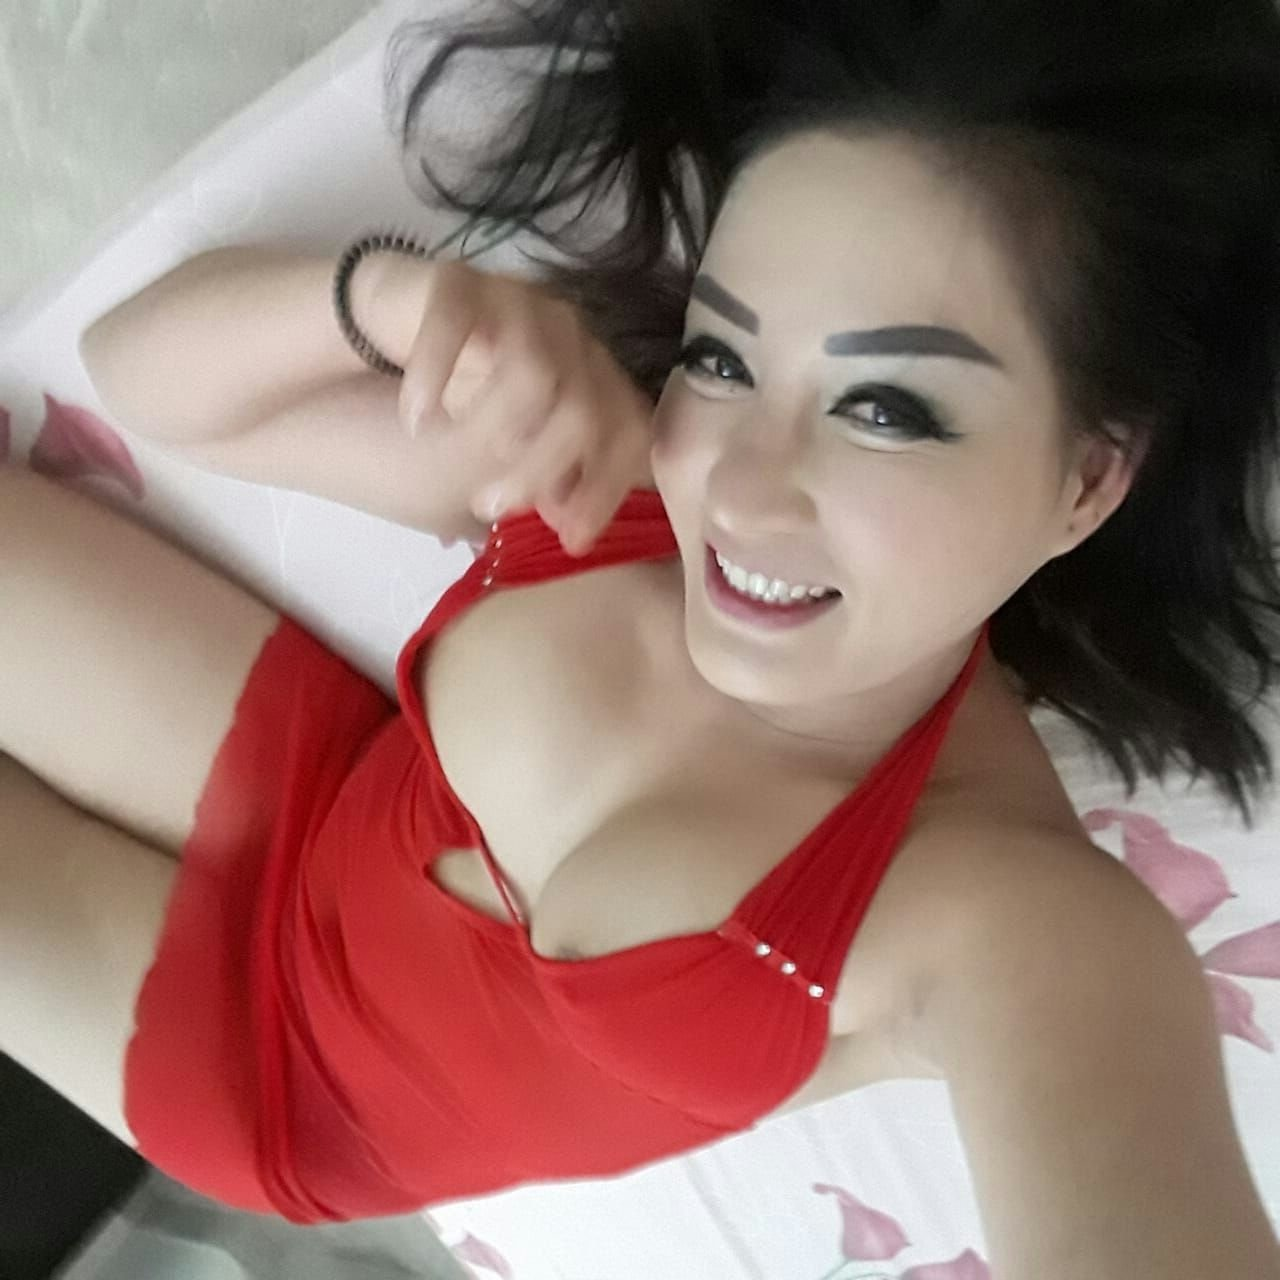 Escorts roleplay